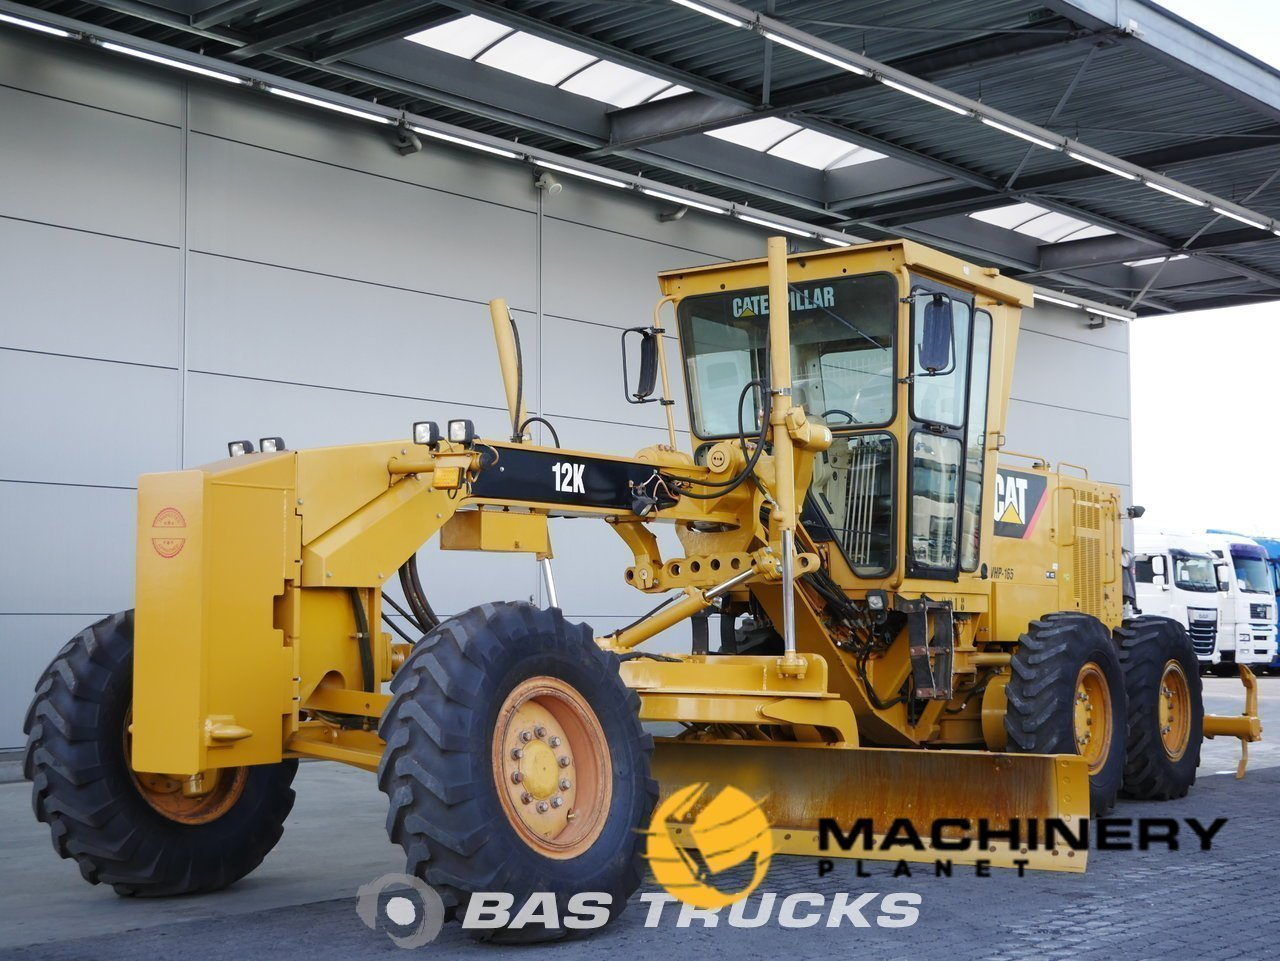 Used-Construction-equipment-Caterpillar-12K-6X4-2011_138129_1-1553942191729_5c9f46afb2004-1.jpg